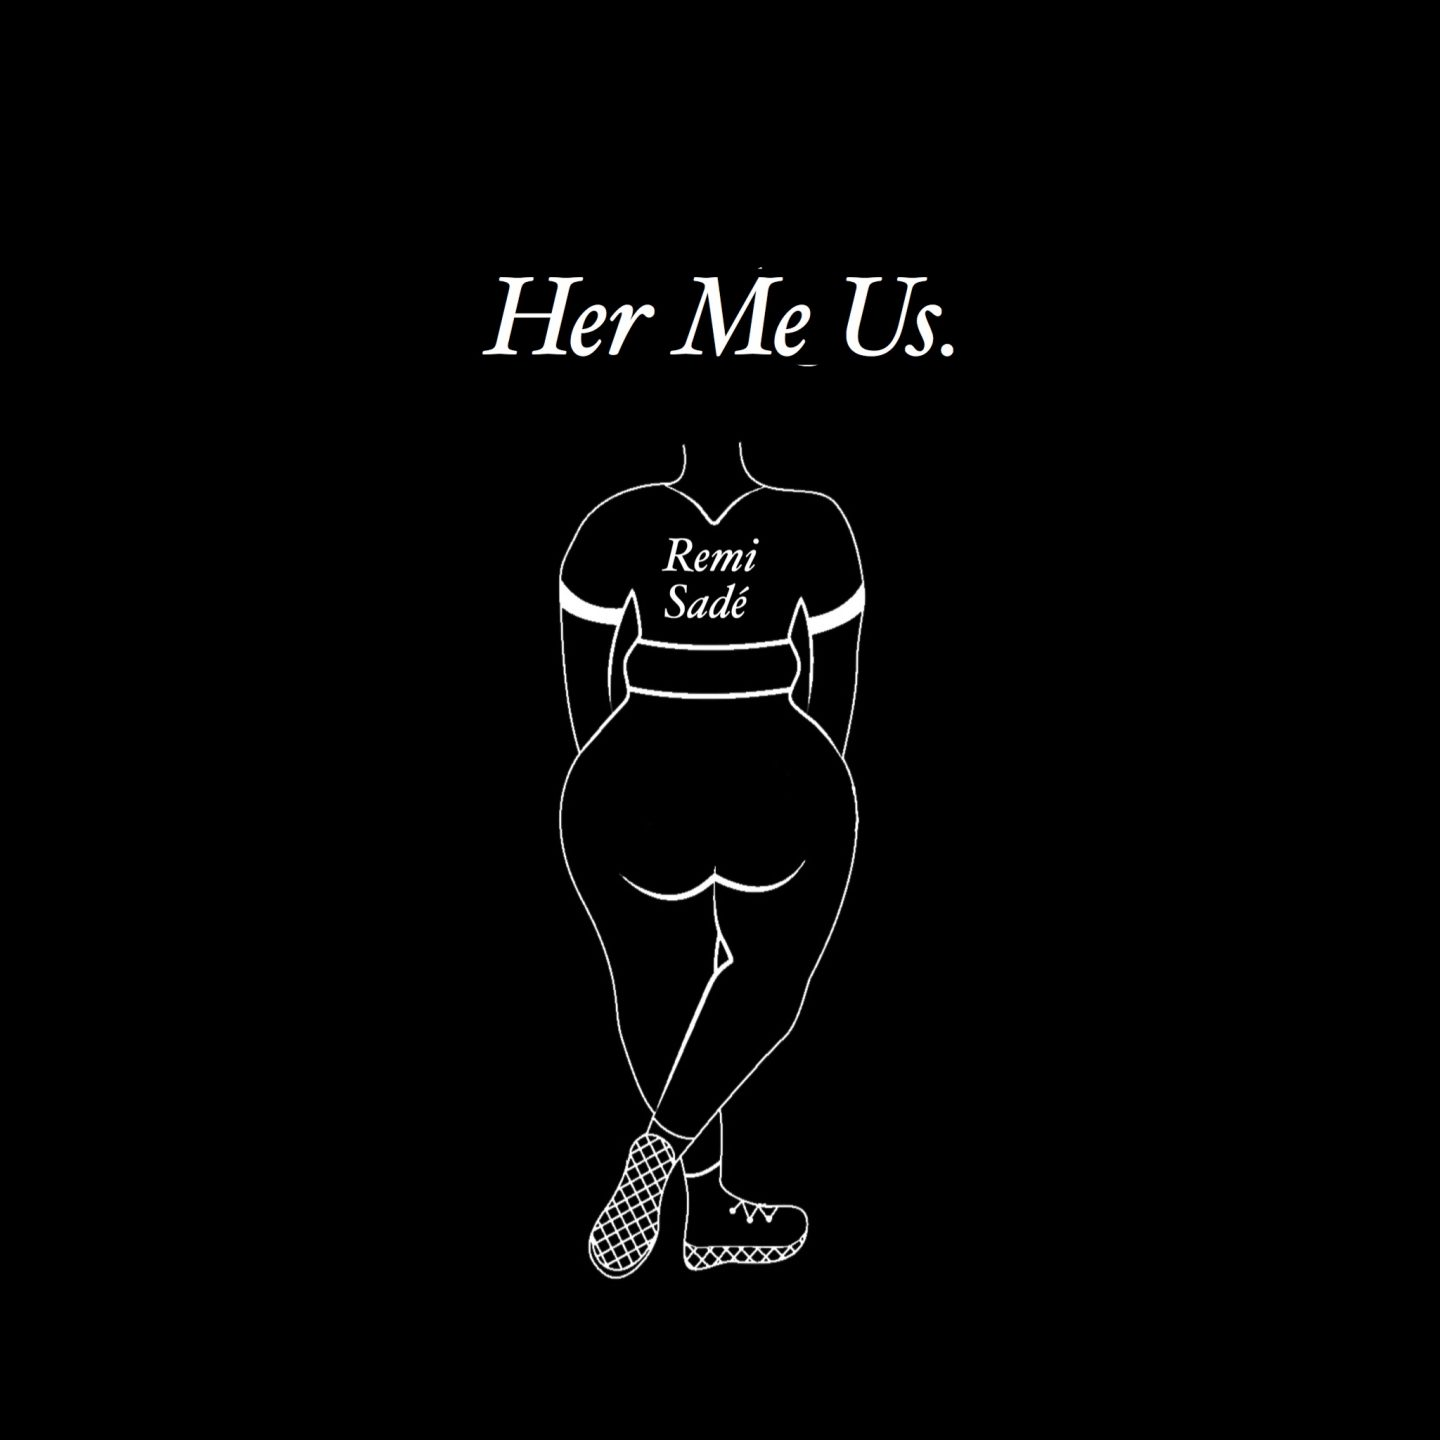 Her Me Us